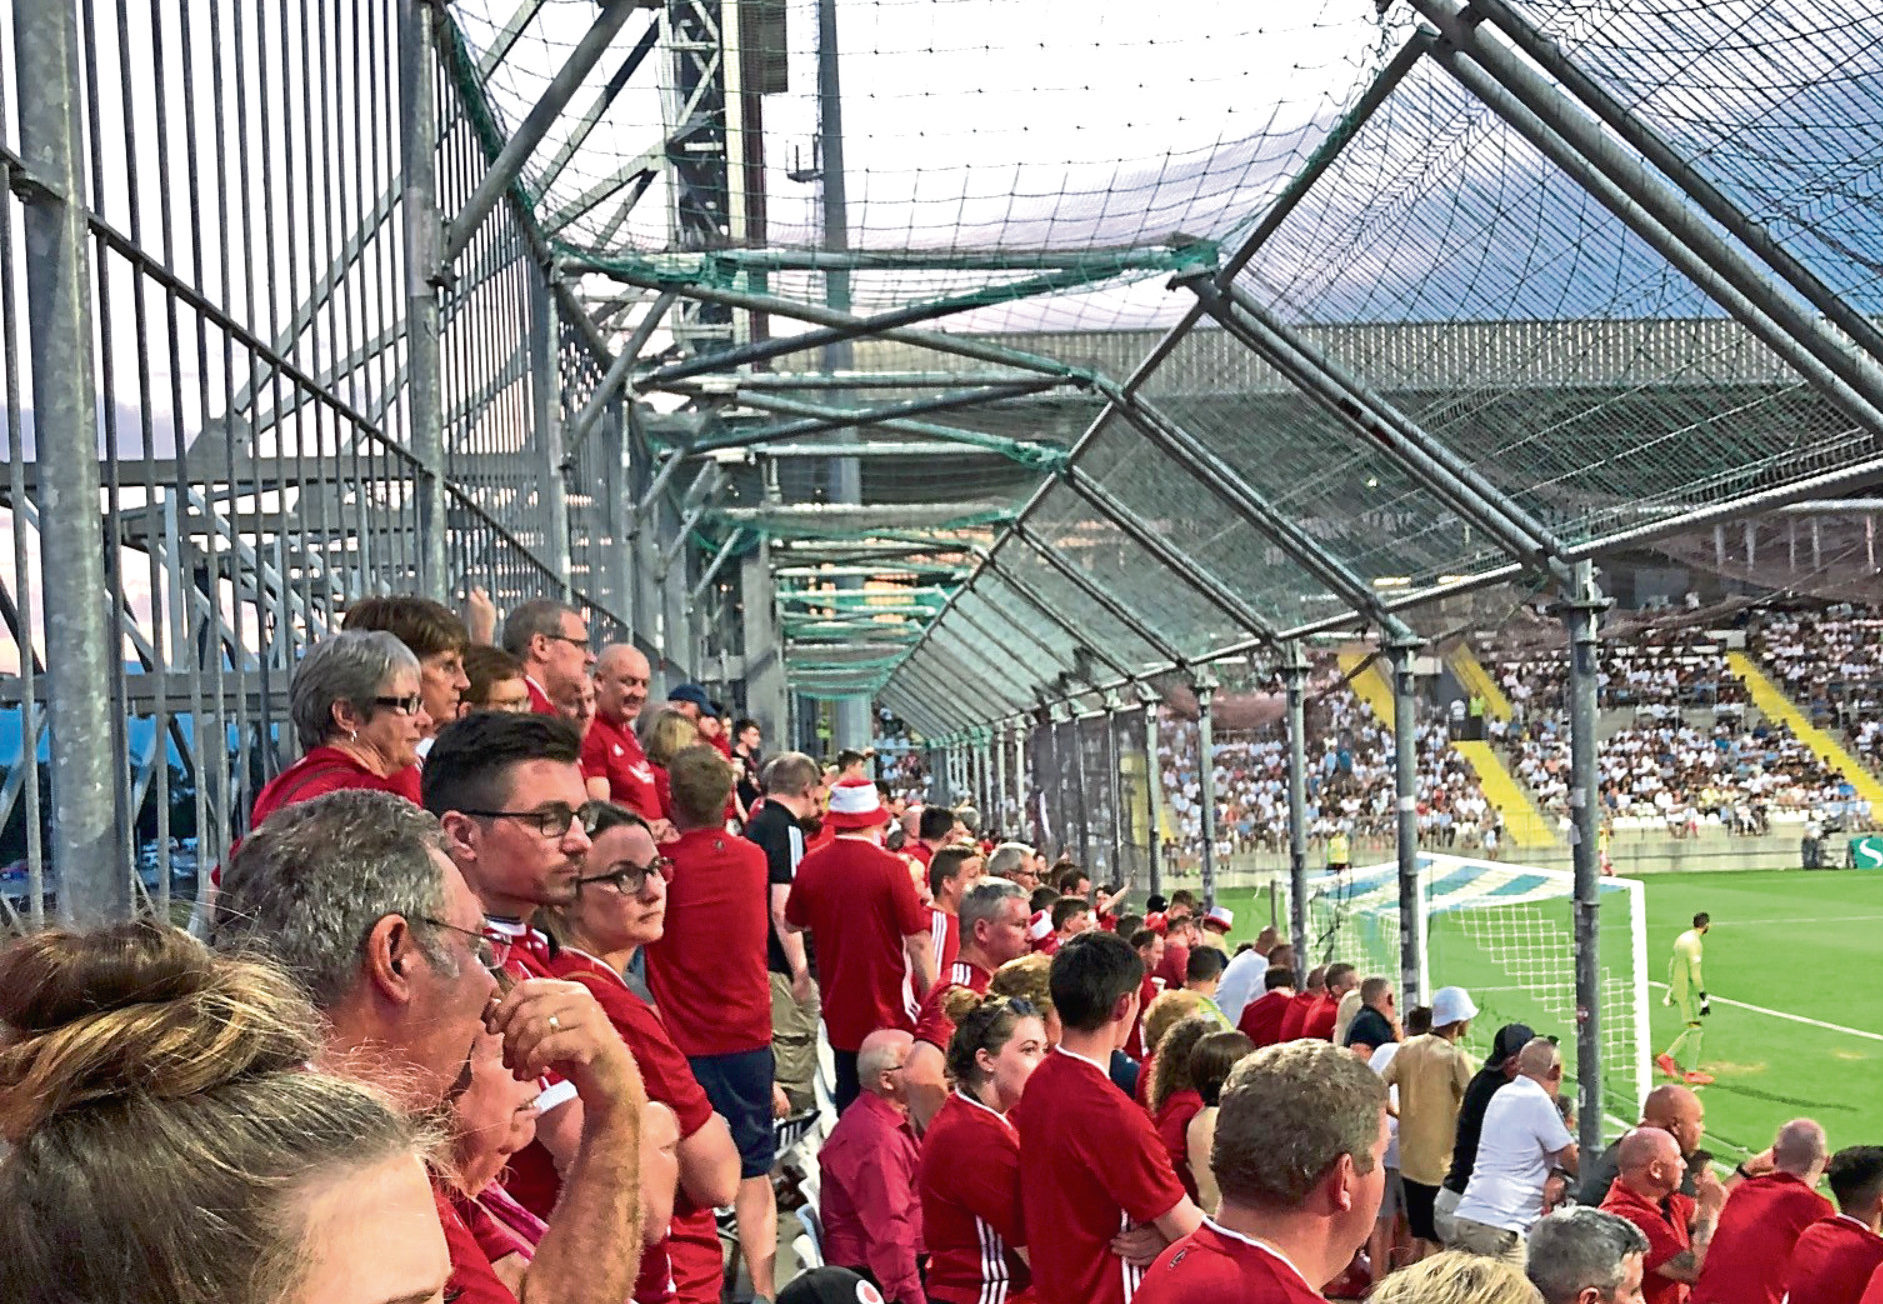 The Dons suffered a 2-0 defeat to Rijeka FC on Thursday